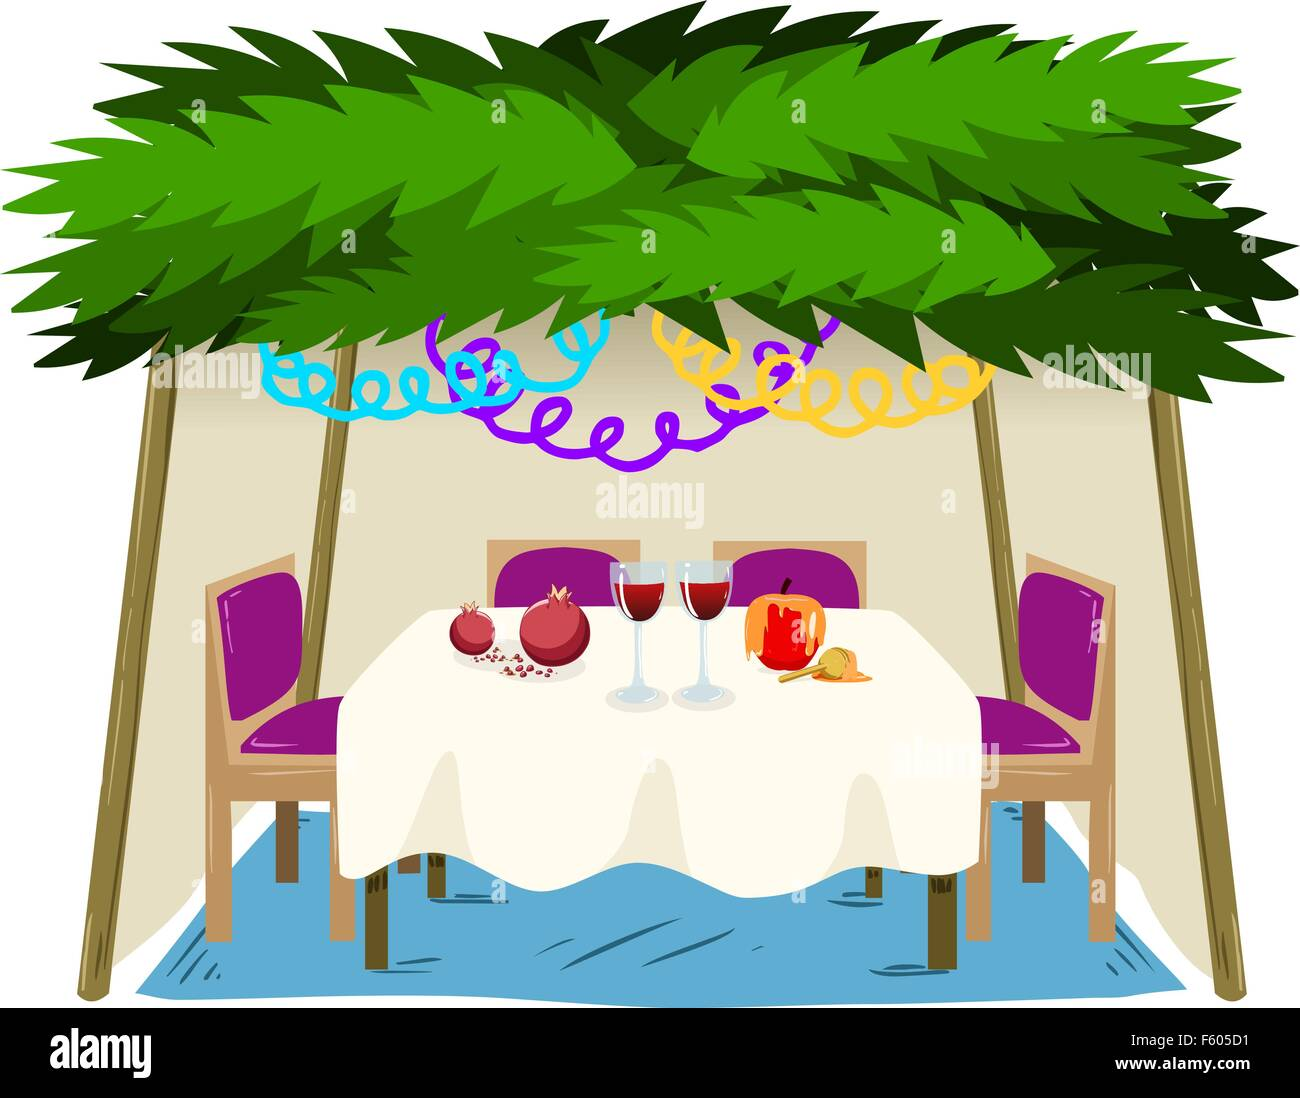 Vector illustration of Sukkah with ornaments table with food for the Jewish Holiday Sukkot. - Stock Image